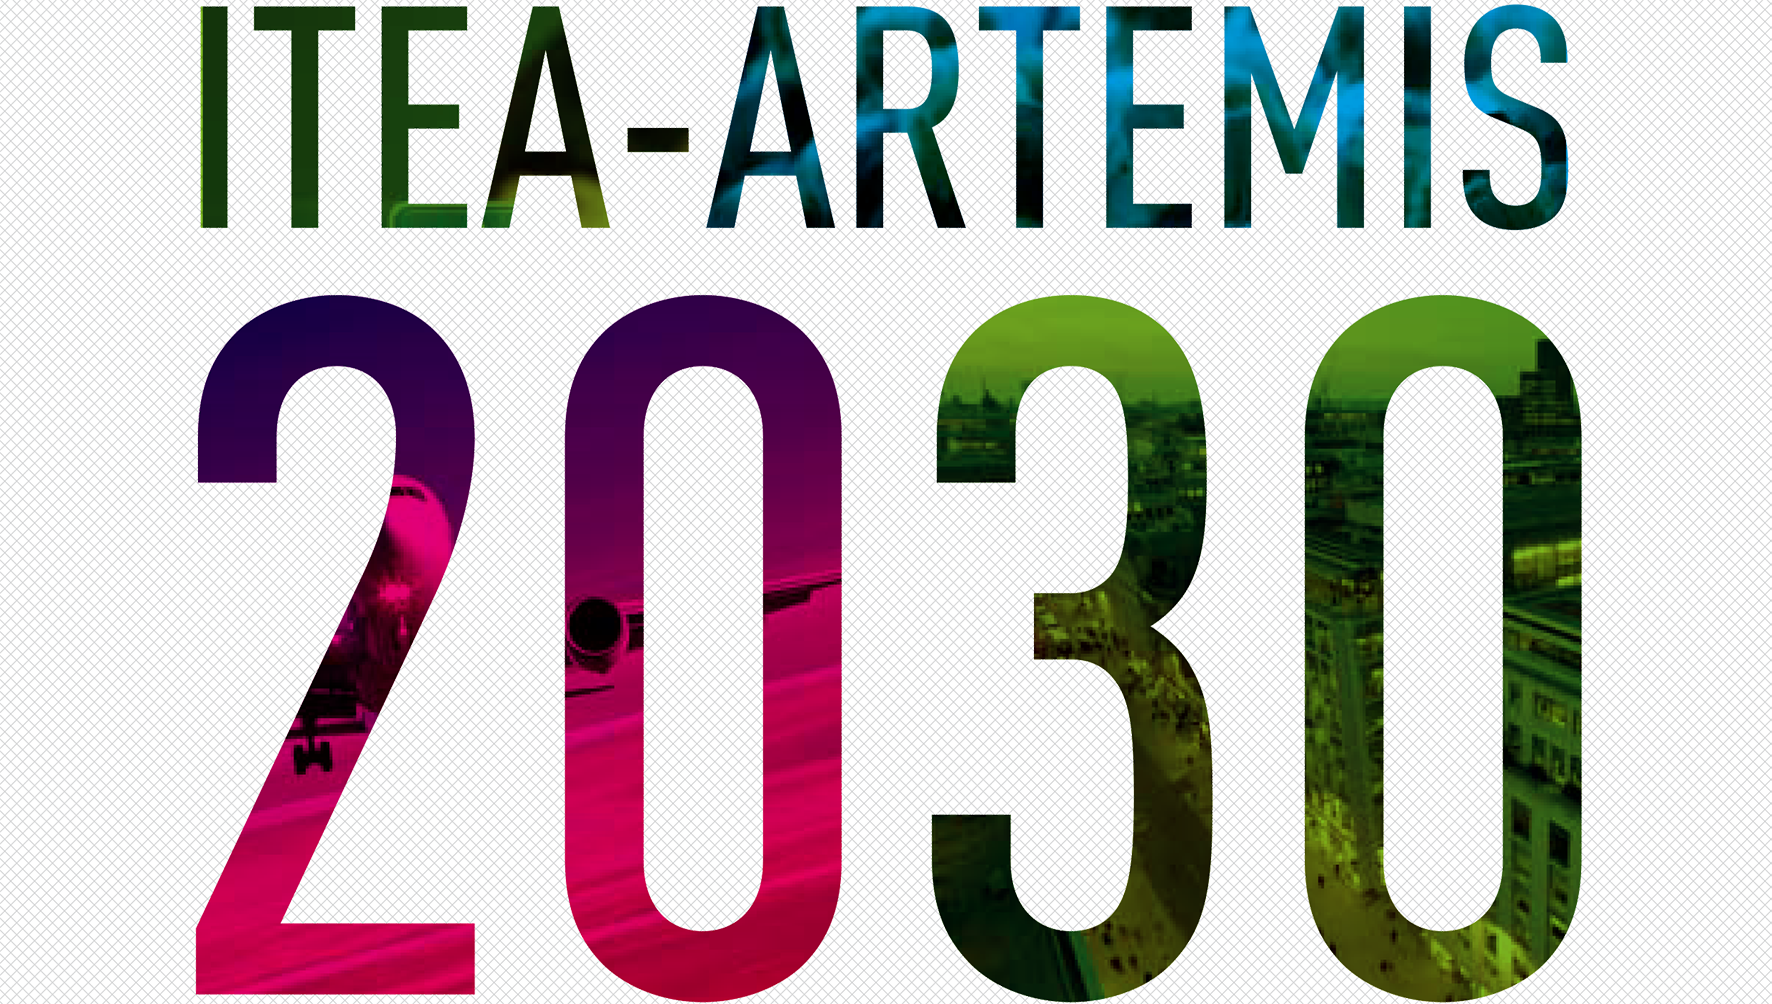 High-level vision ITEA-ARTEMIS 2030